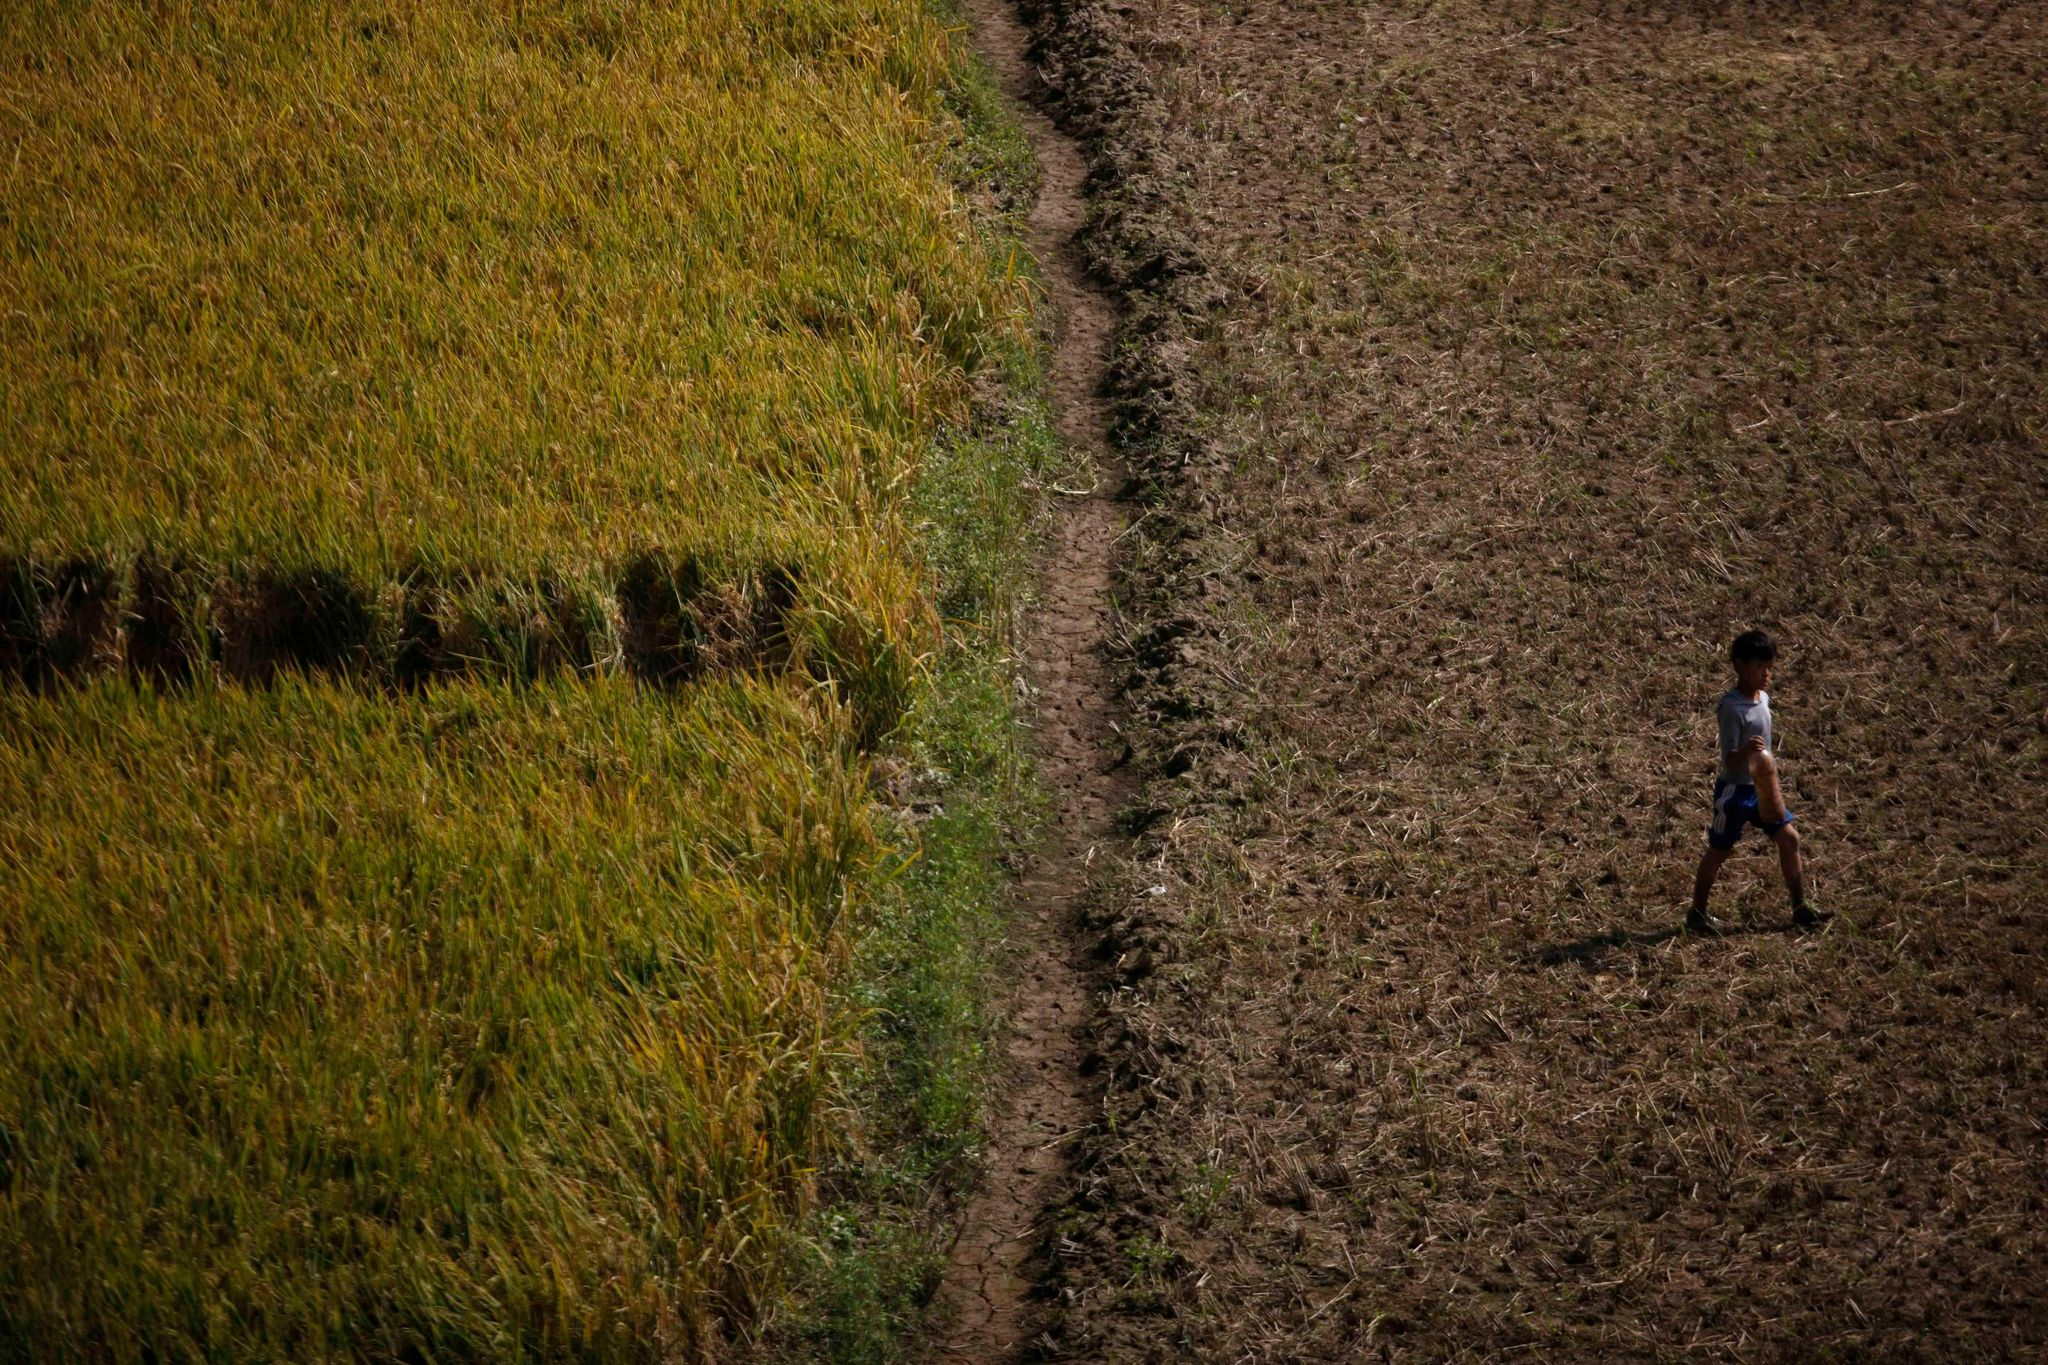 Nepal less and less able to feed itself